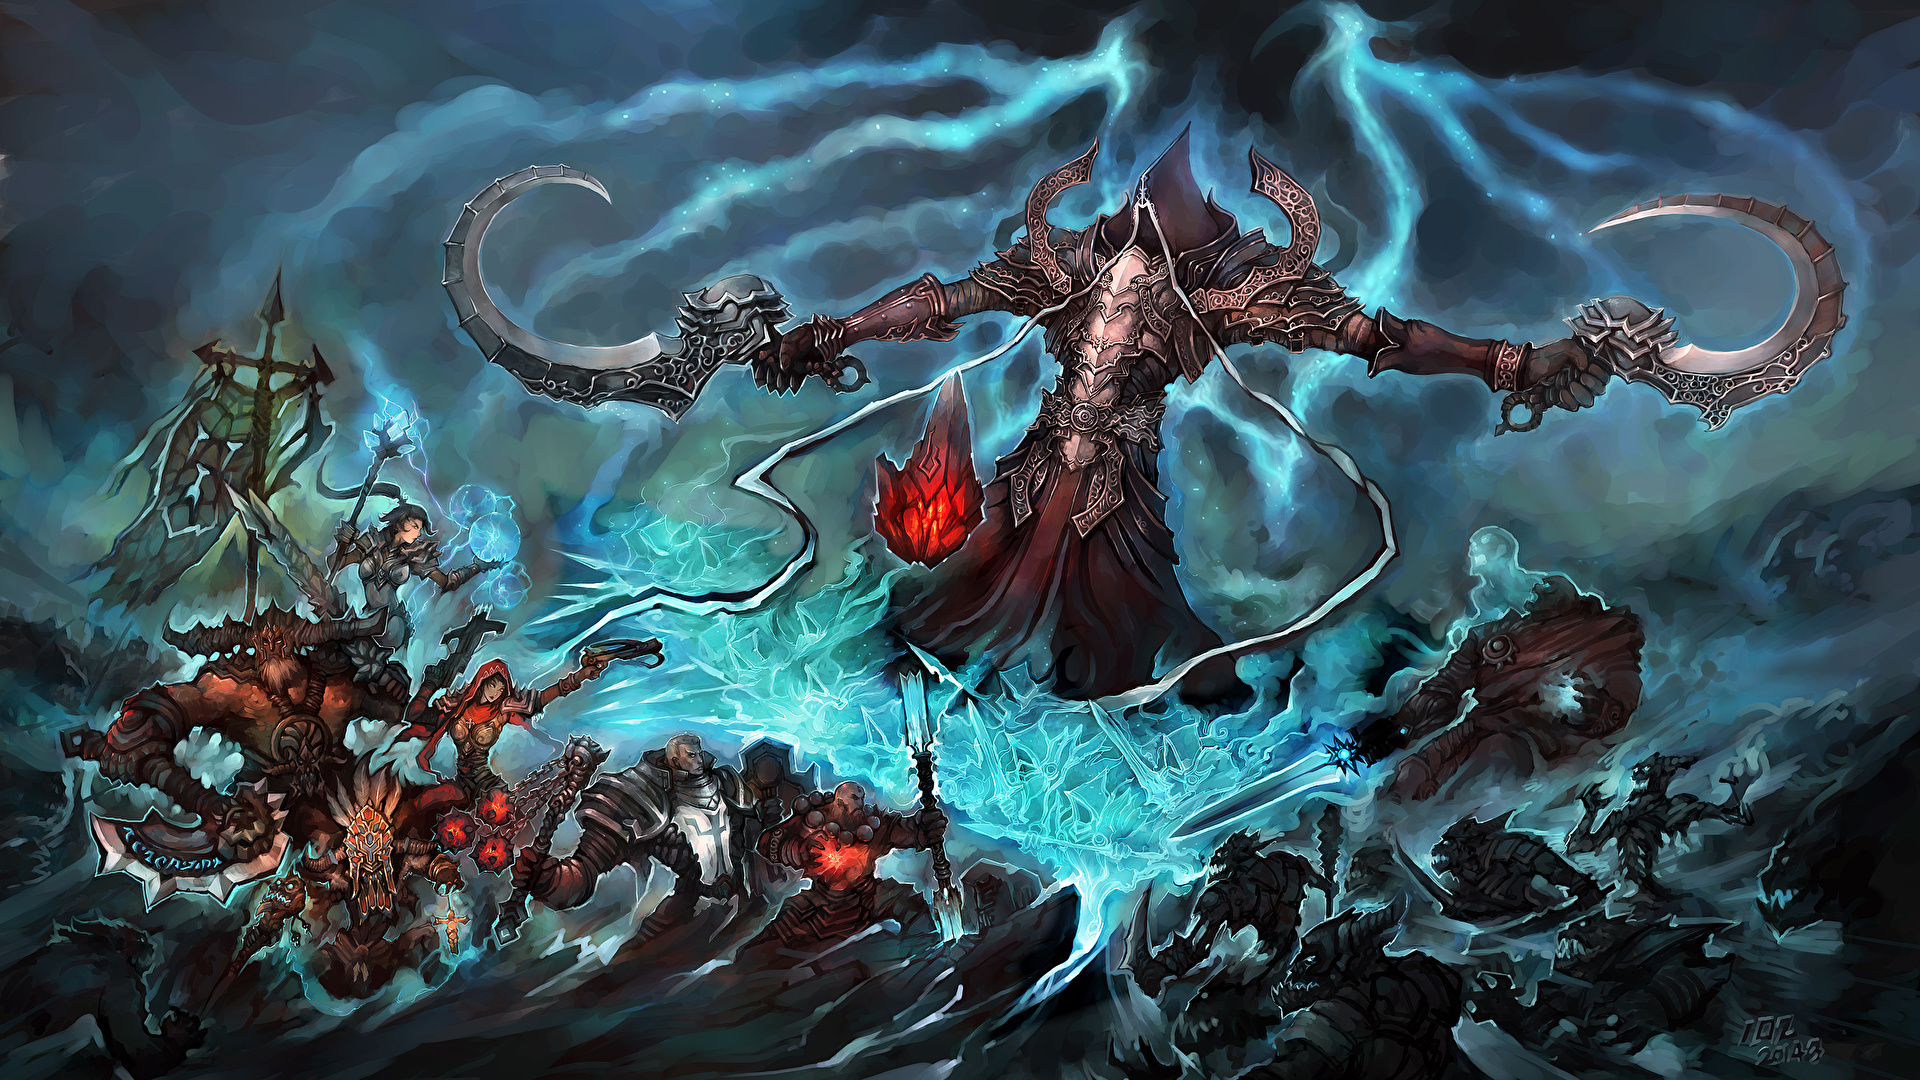 Photo Diablo 3 Angel Of Death Malthael Reaper Of Souls 1920x1080